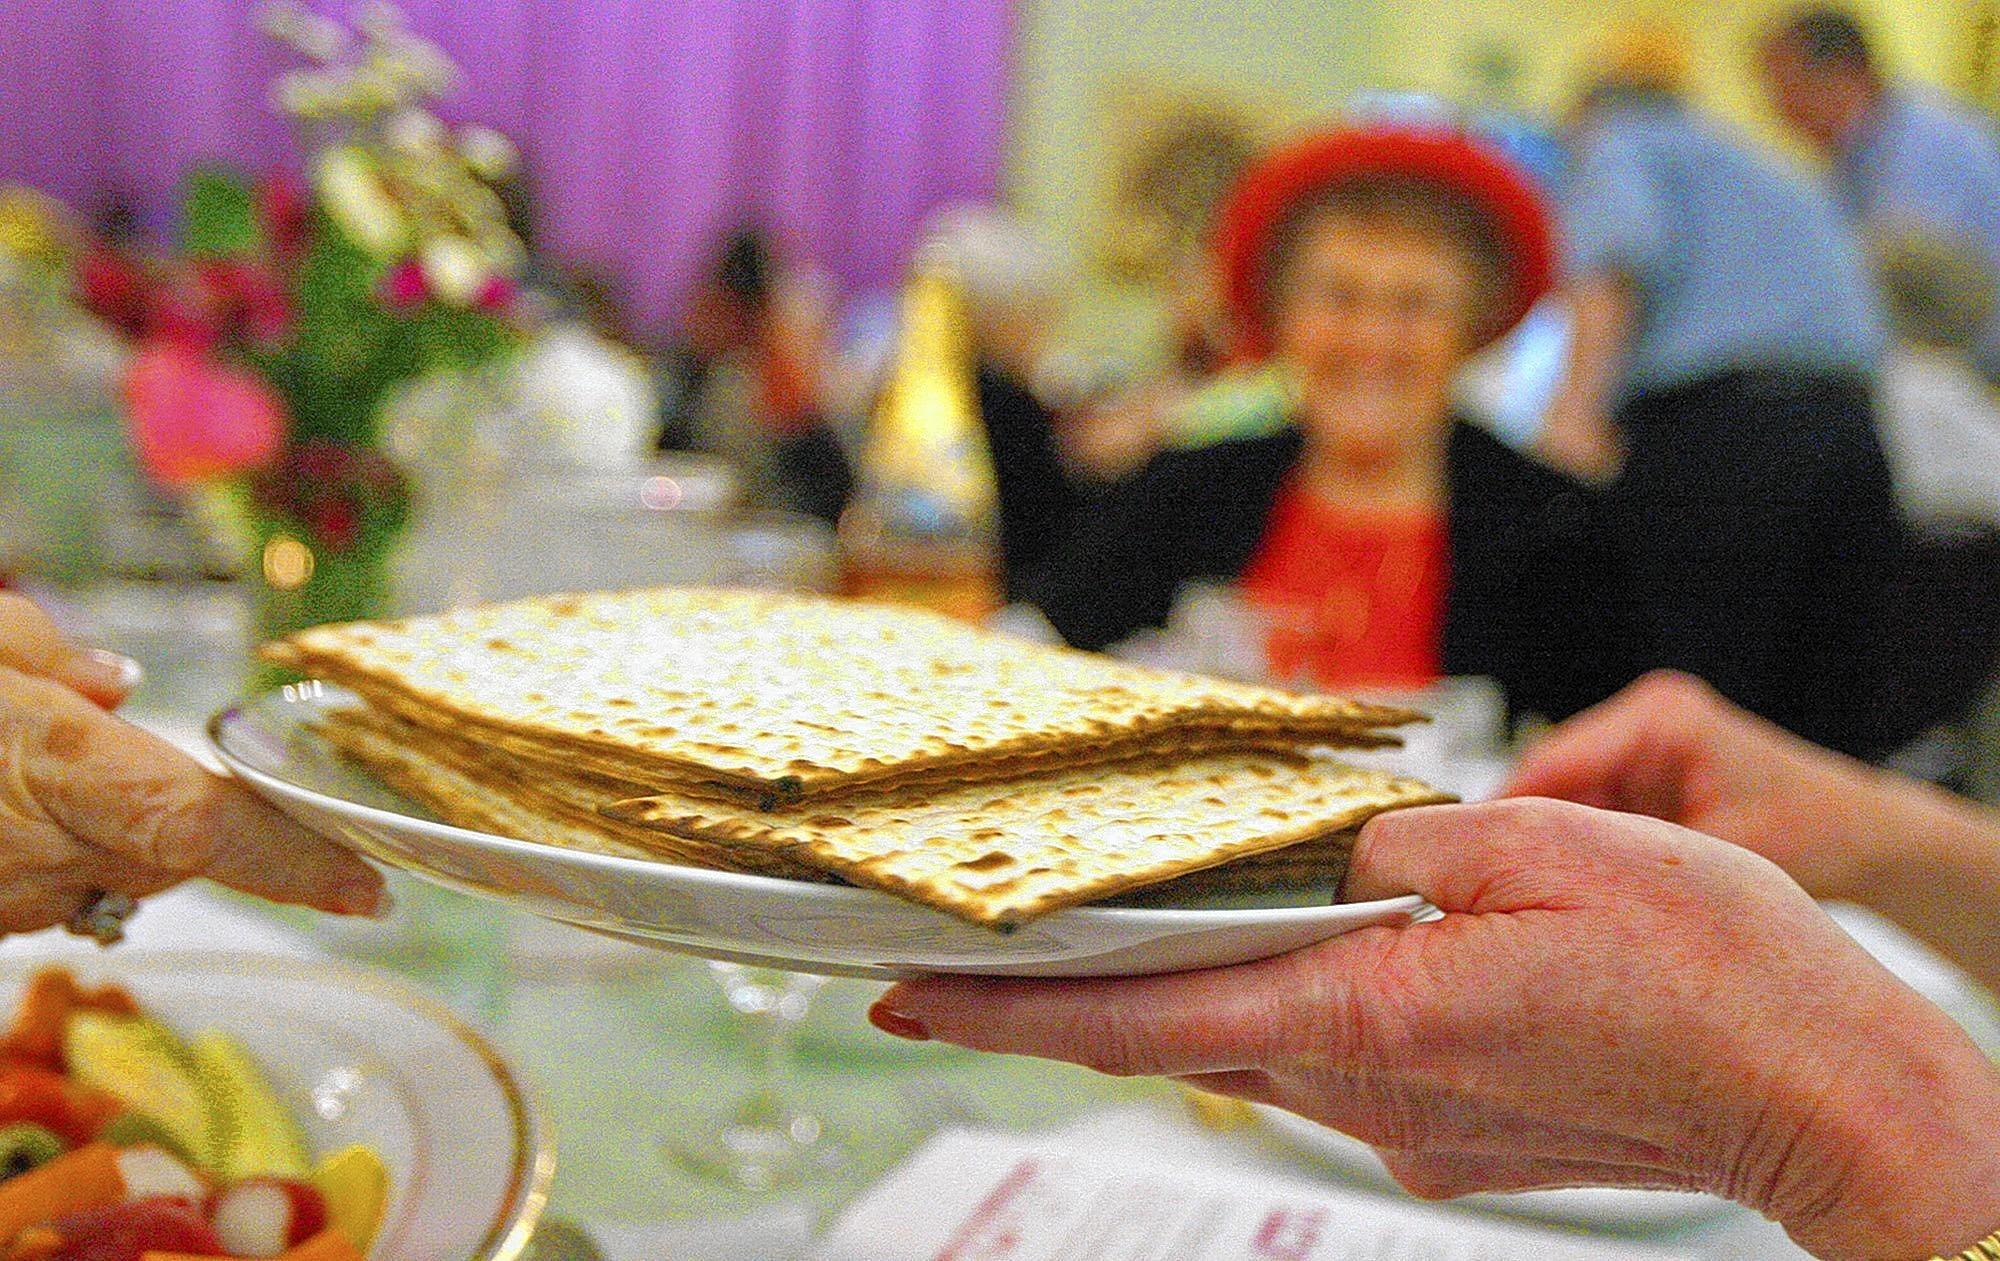 Matzah is passed during Passover Seder at Temple Sinai in Glendale on Tuesday, April 15, 2014. The Seder service marks the beginning of Passover.